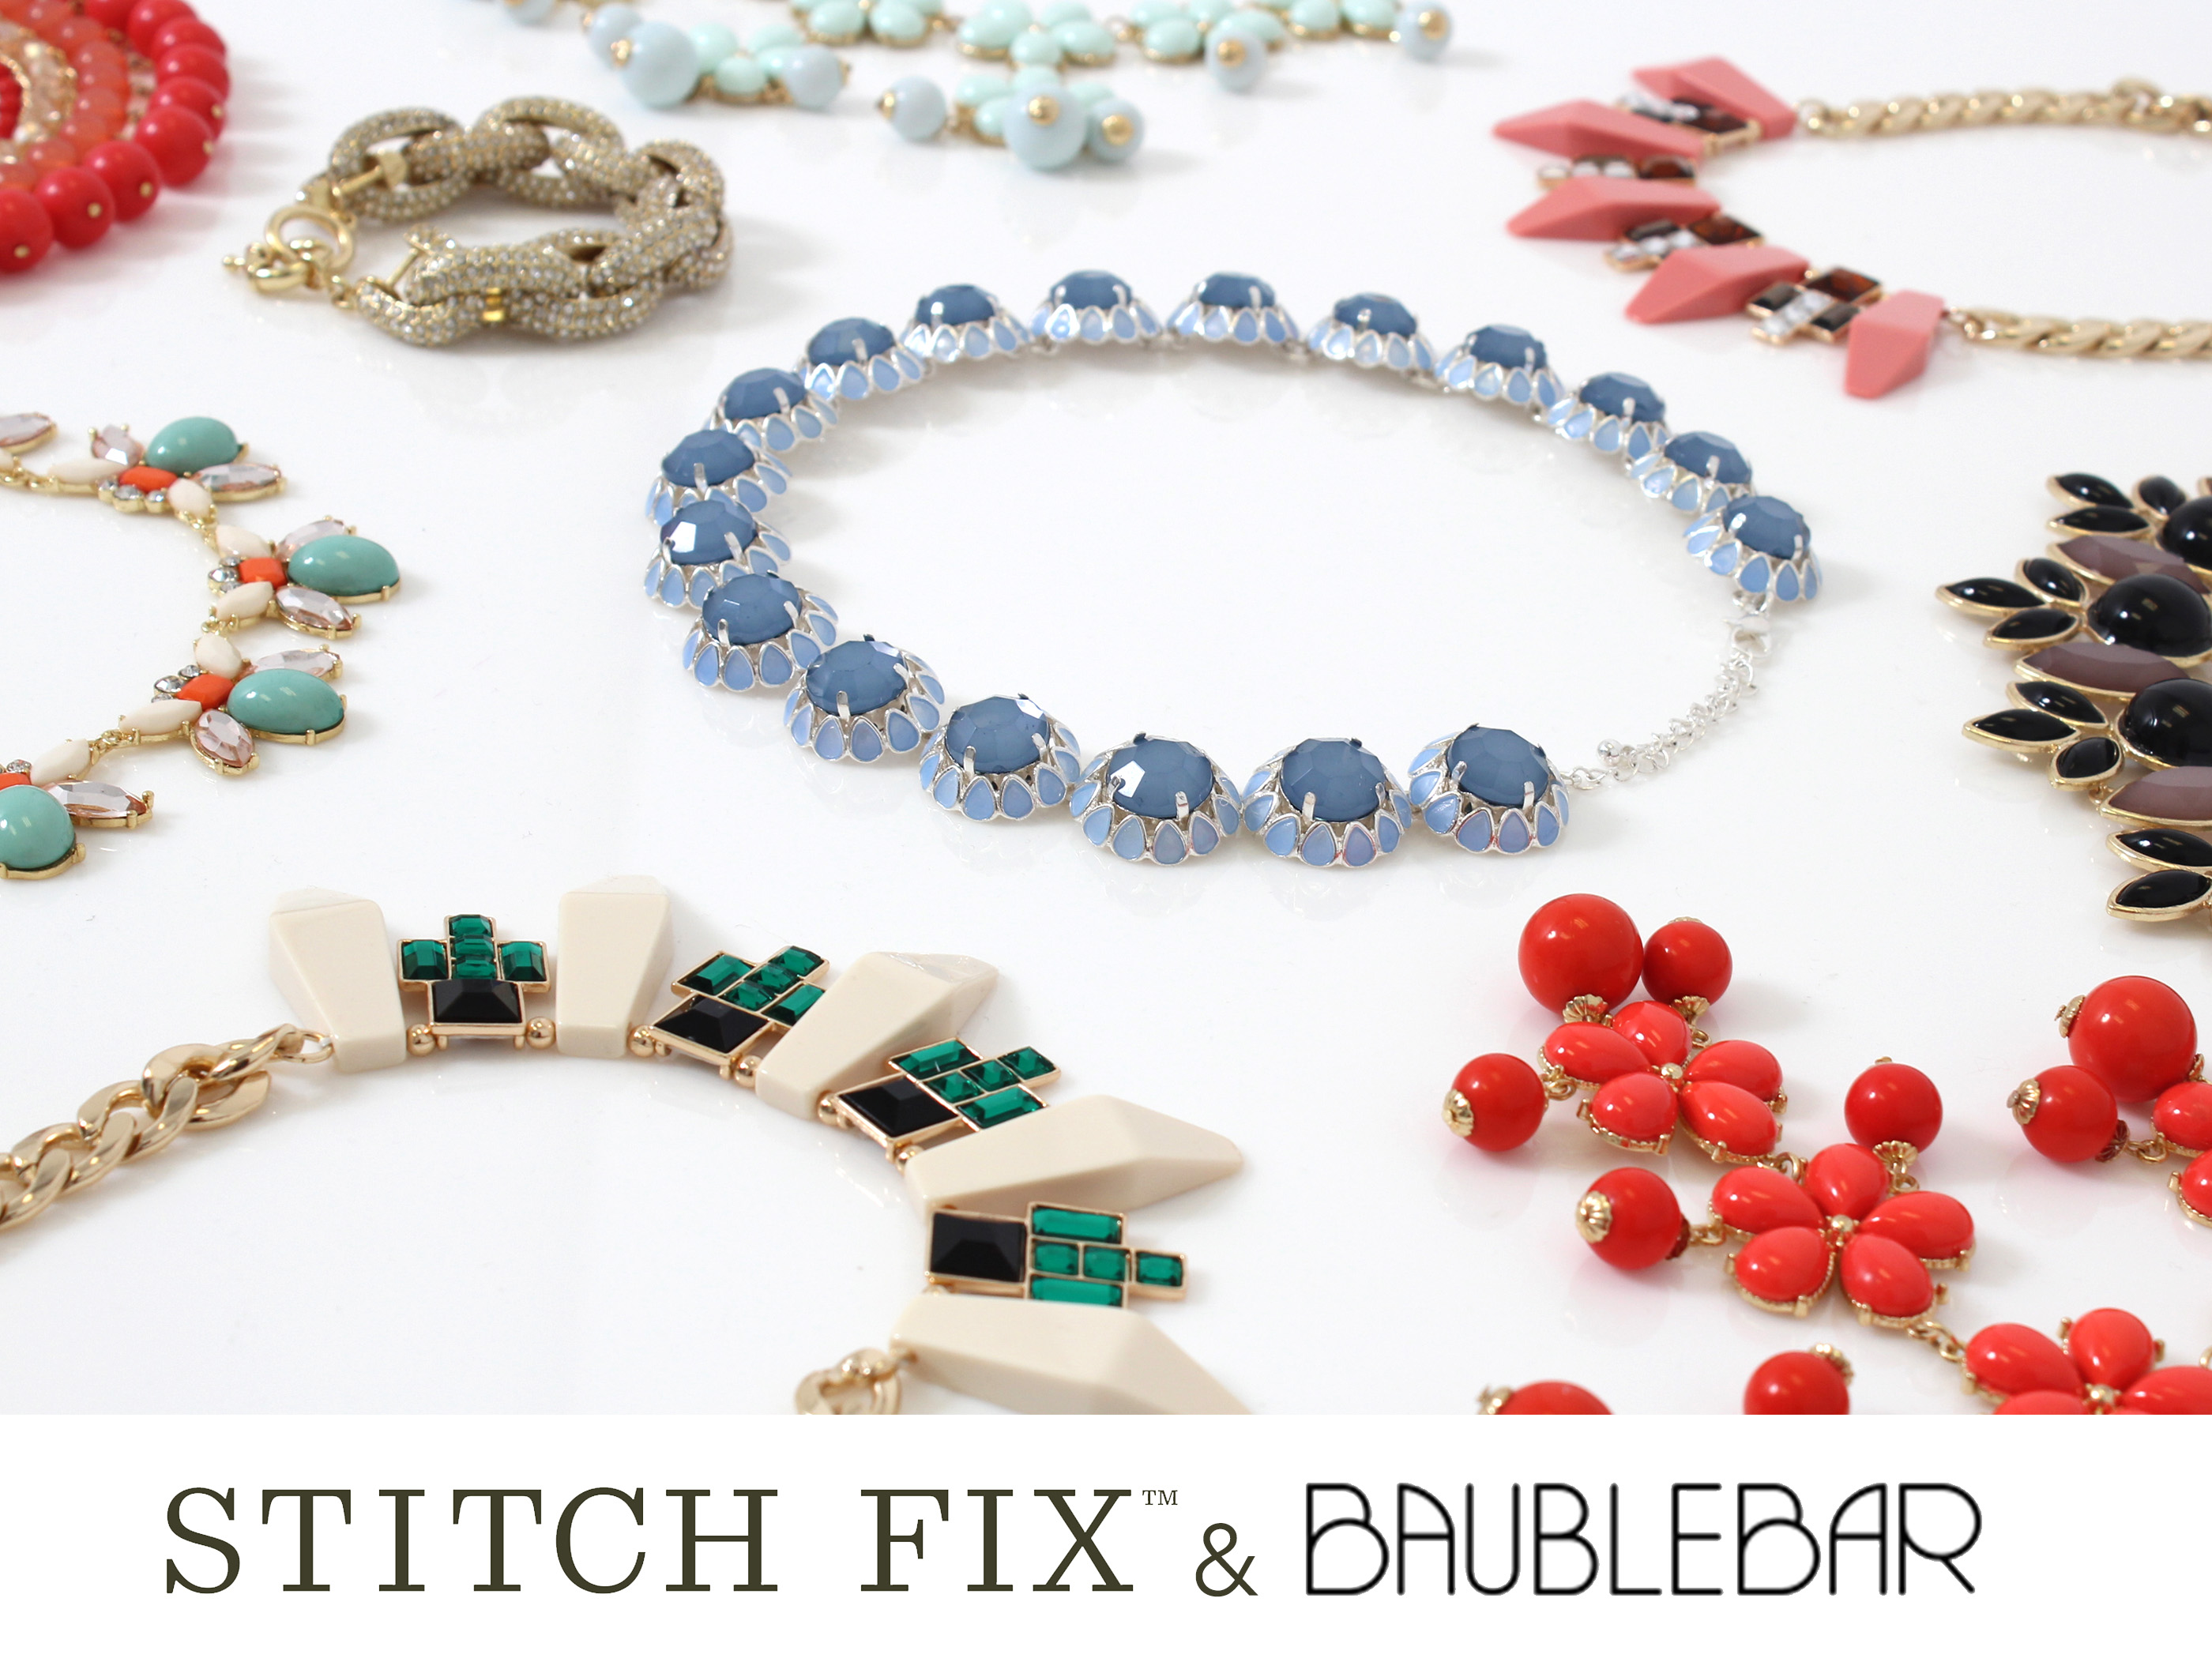 Stitch Fix and Bauble Bar